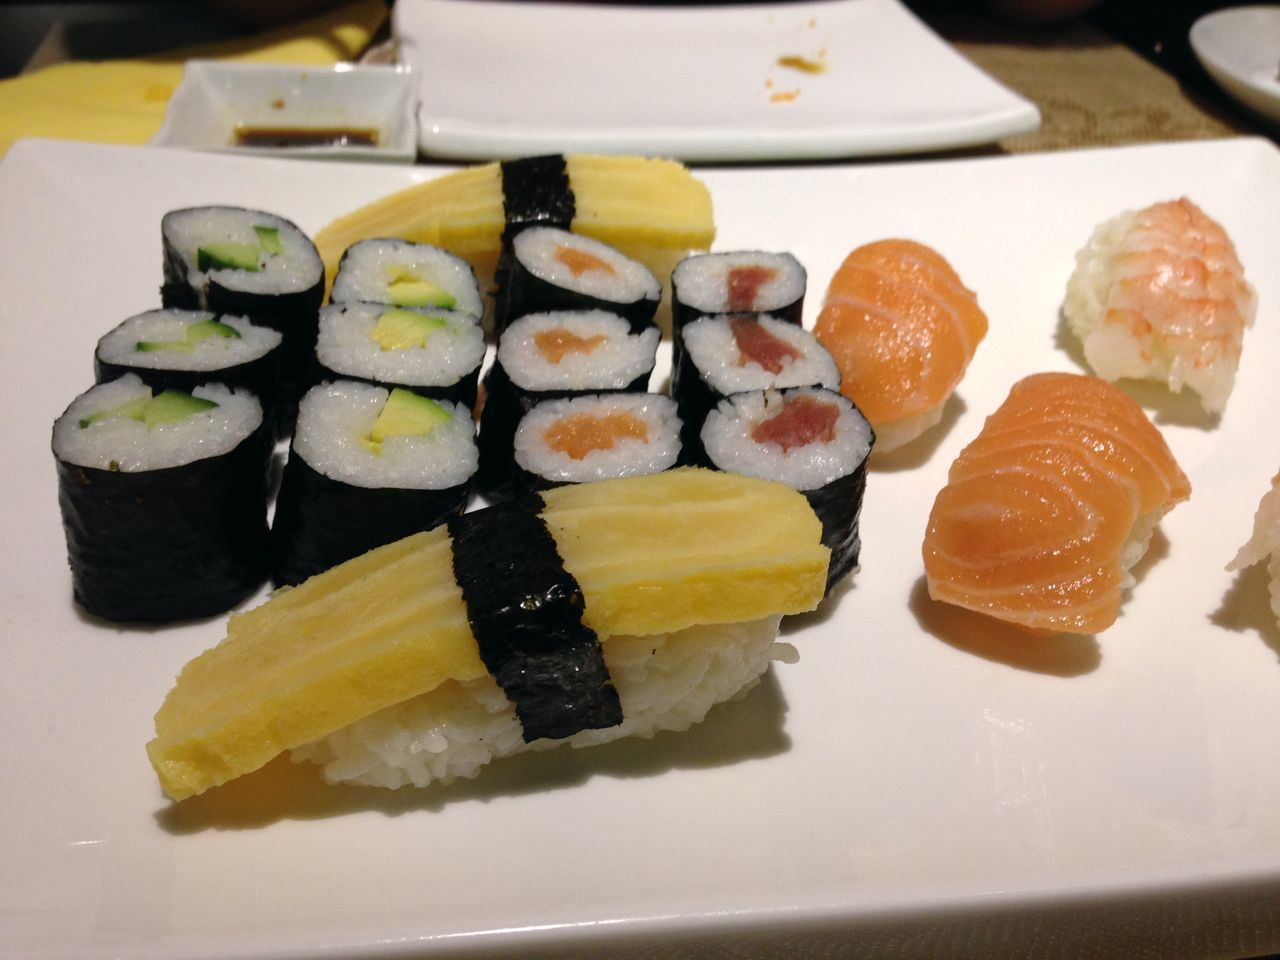 sushi, food and drink, food, freshness, japanese food, seafood, ready-to-eat, still life, serving size, healthy eating, plate, slice, indoors, appetizer, no people, close-up, salmon, indulgence, table, gourmet, temptation, day